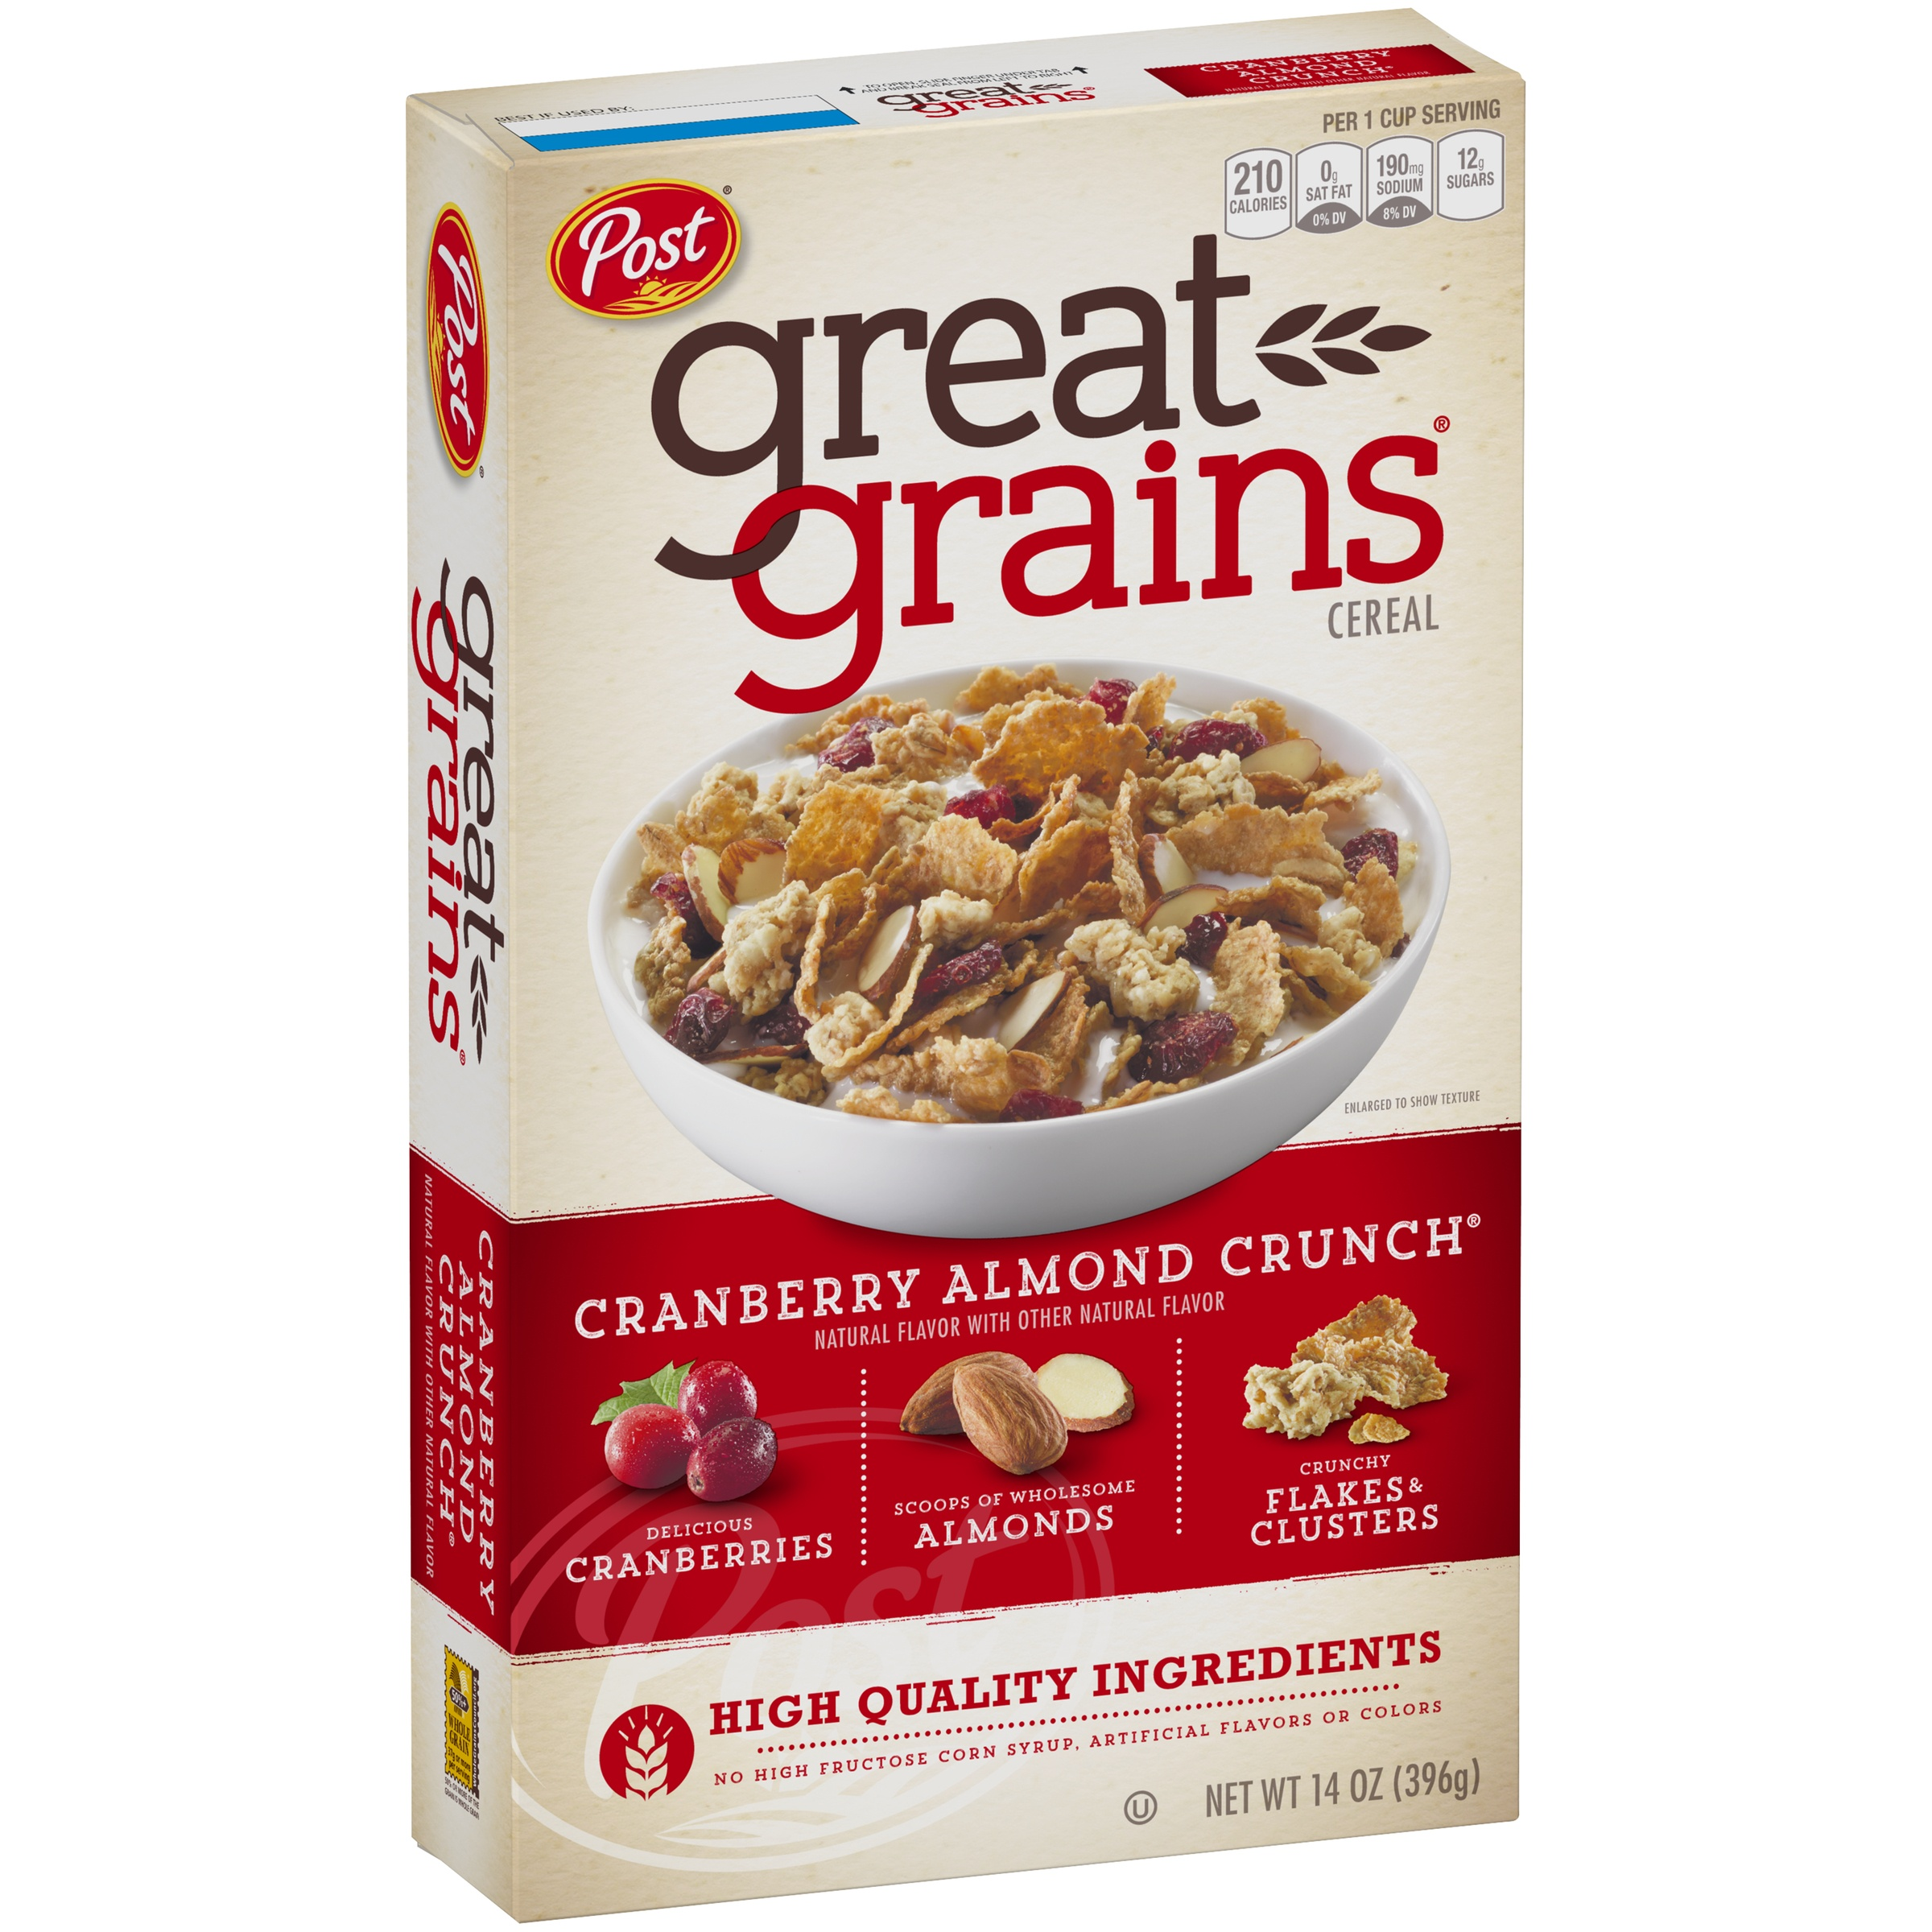 Post Great Grains Cranberry Almond Crunch Whole Grain Cereal 14 oz. Box